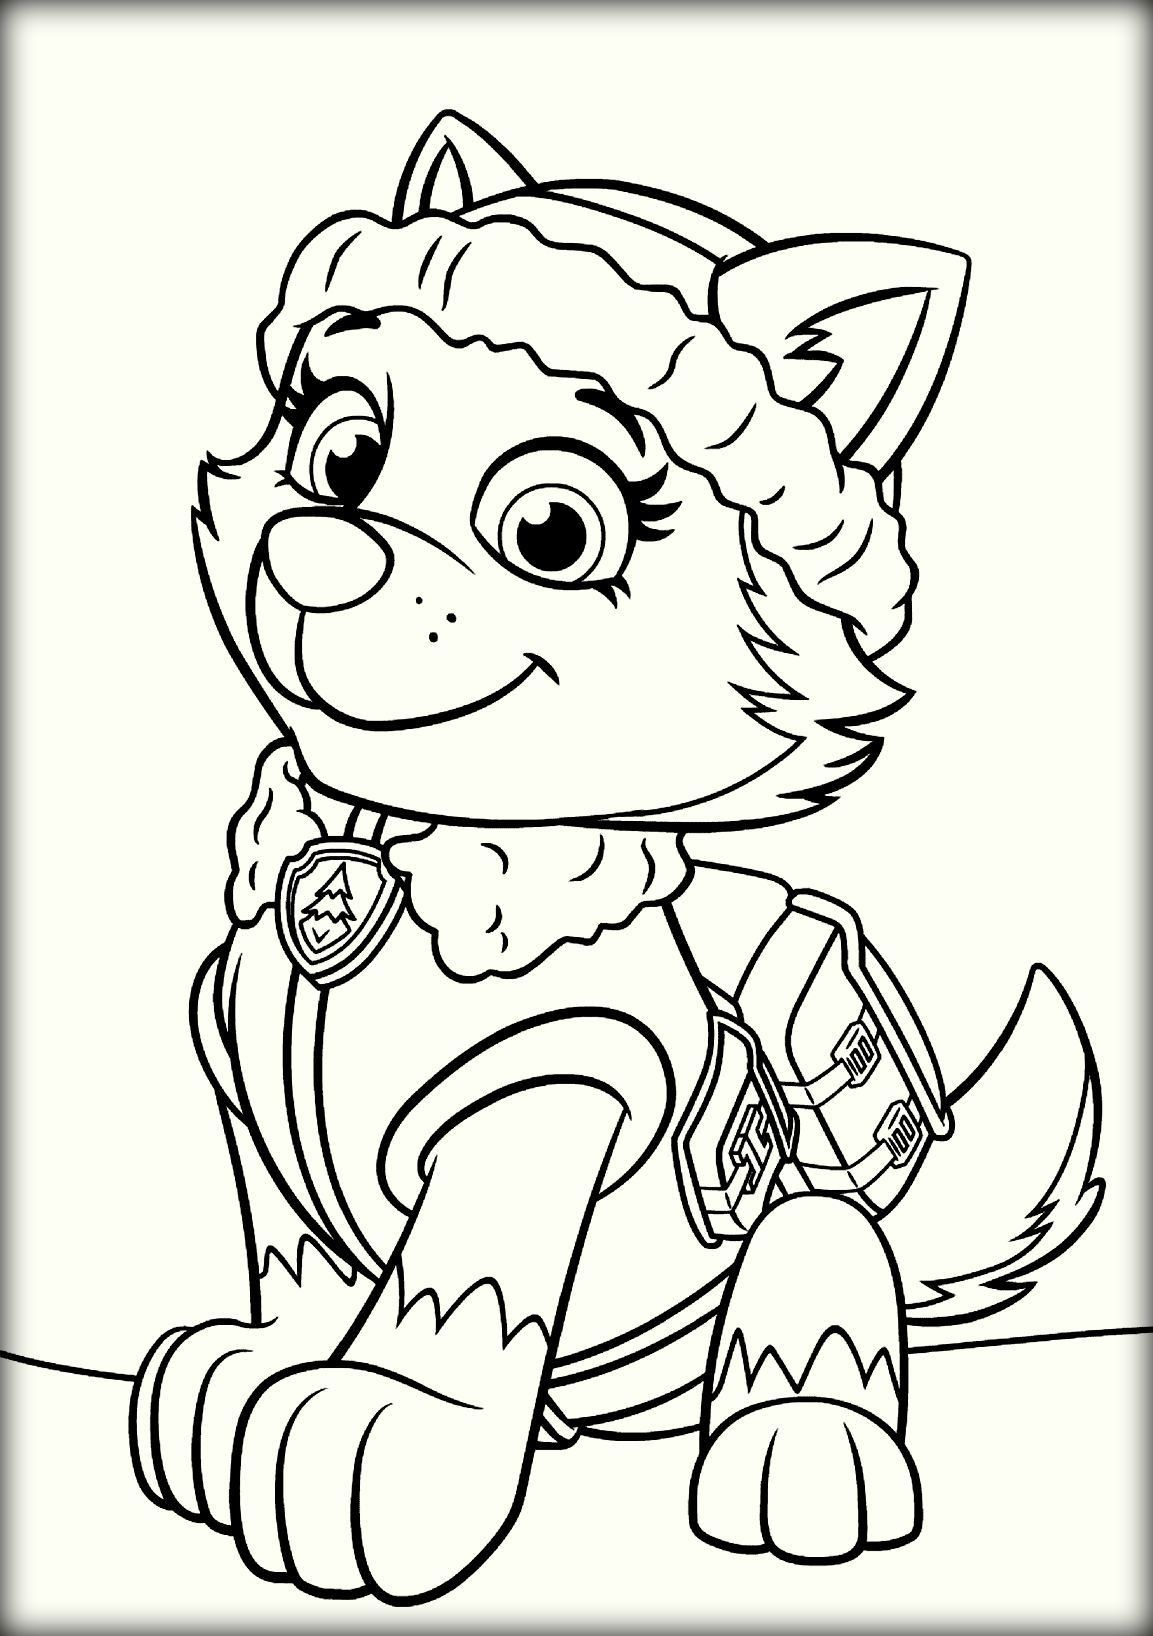 10 Paw Patrol Games Pups Save The Day Paw Patrol Jungle Terrain Vehicle Paw Patrol On A Roll Paw Patrol Coloring Pages Paw Patrol Coloring Dog Coloring Page